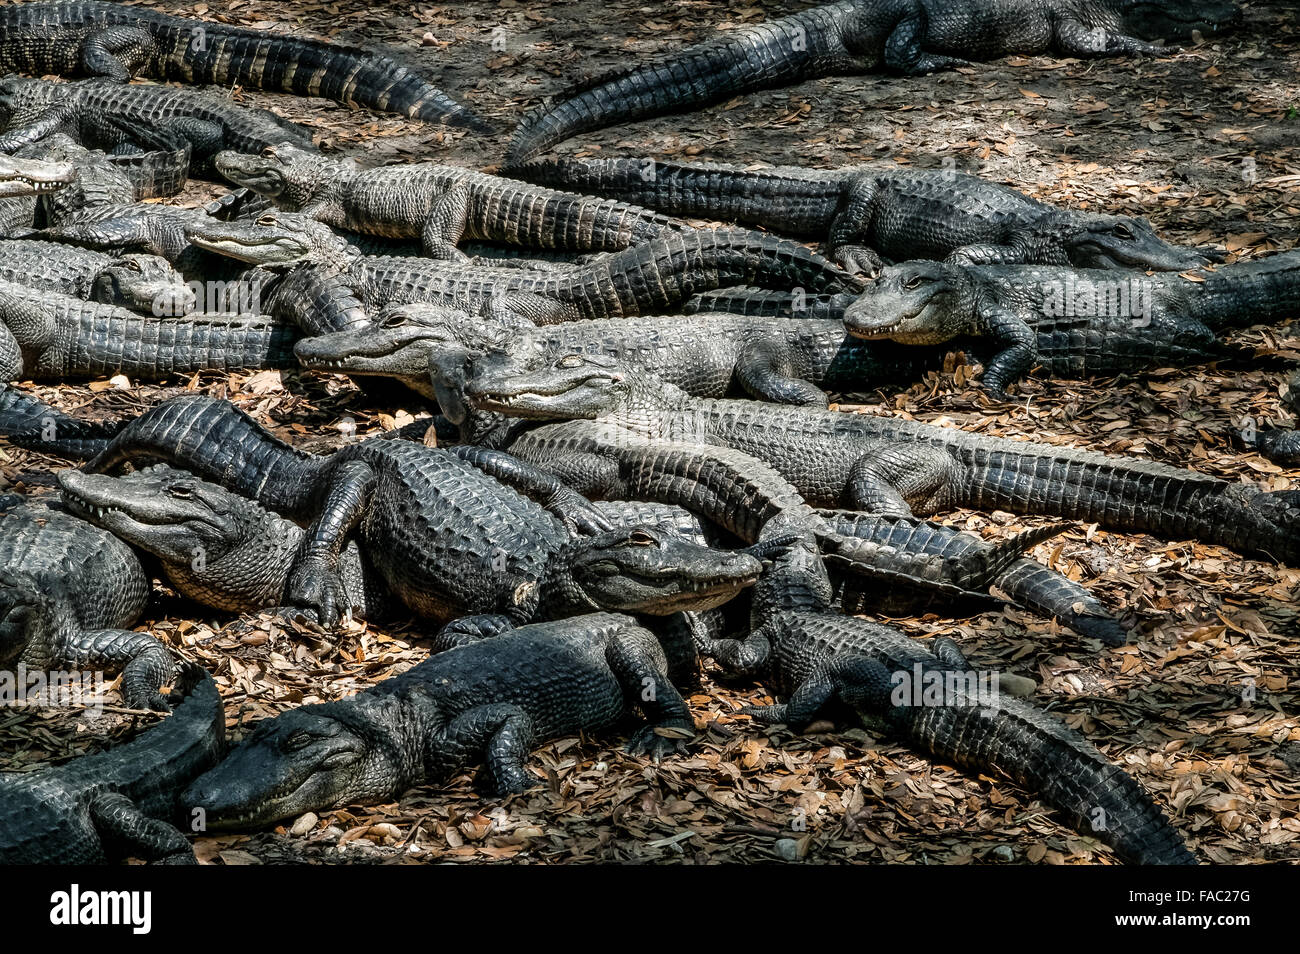 A large group of captive American Alligators resting and sunning themselves at the St. Augustine Alligator Farm, - Stock Image